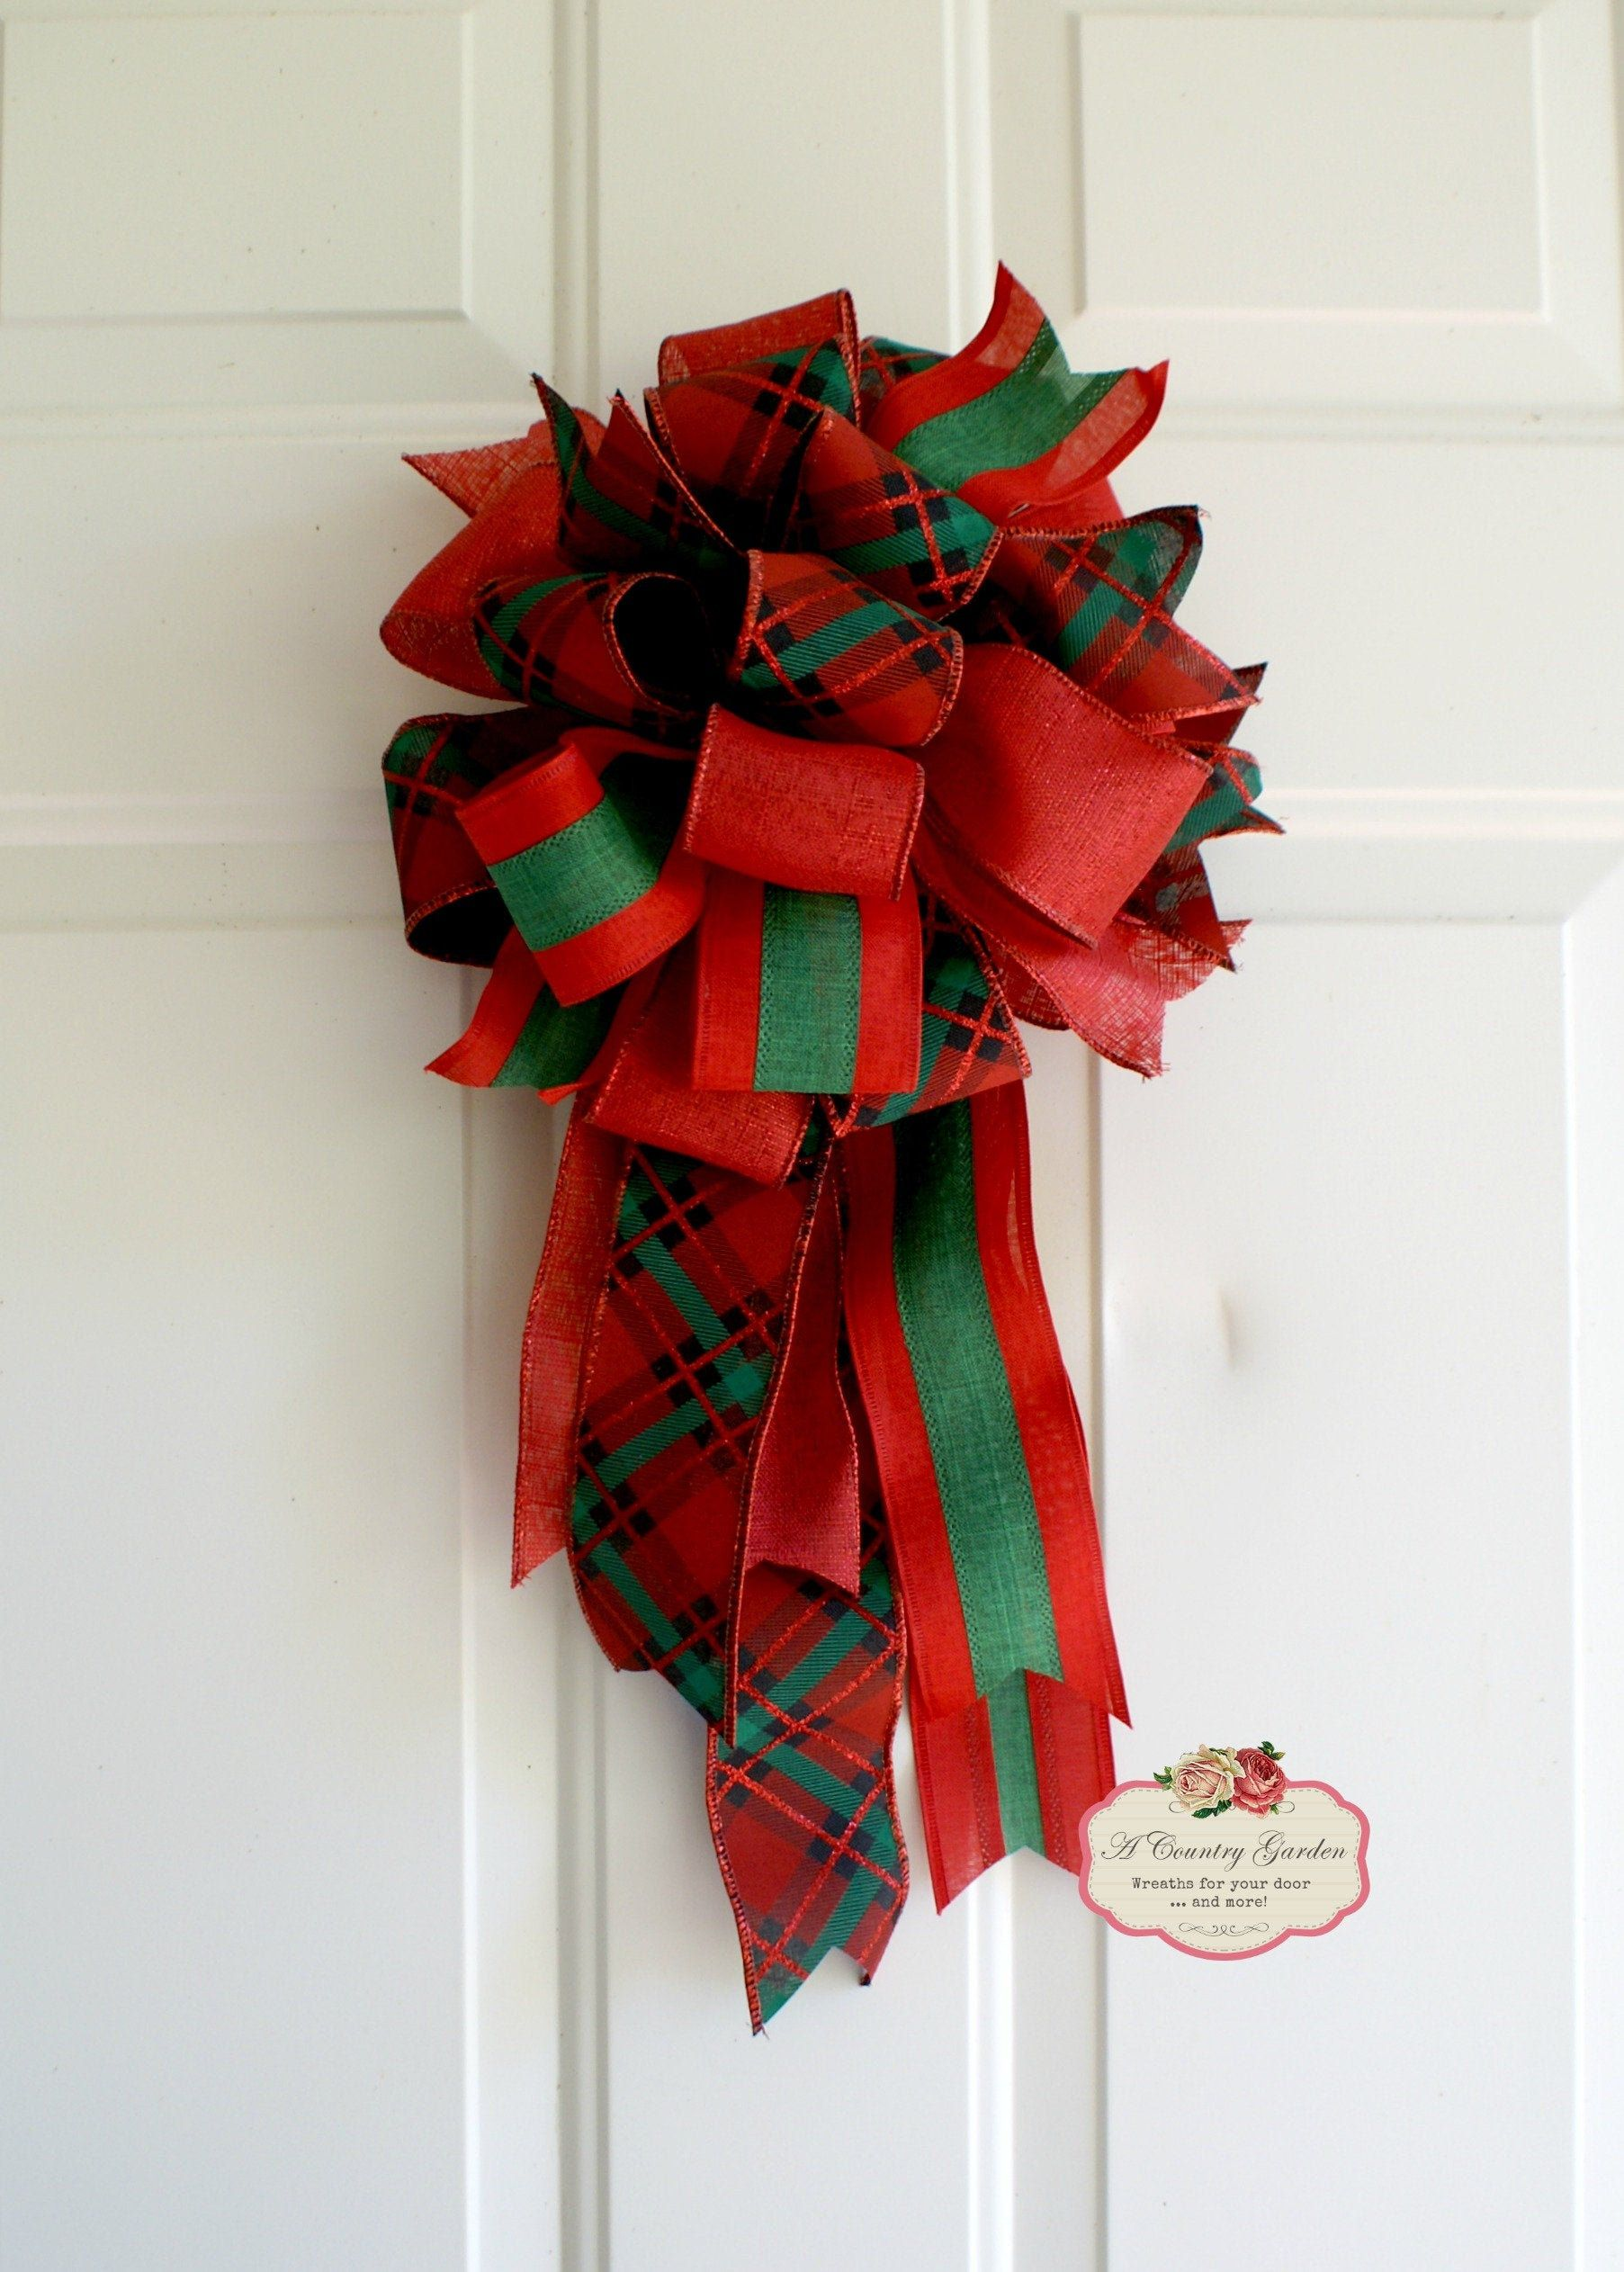 Green Country Christmas 2020 Christmas Plaid Wreath Bow, Red Green Country Plaid Swag Bow